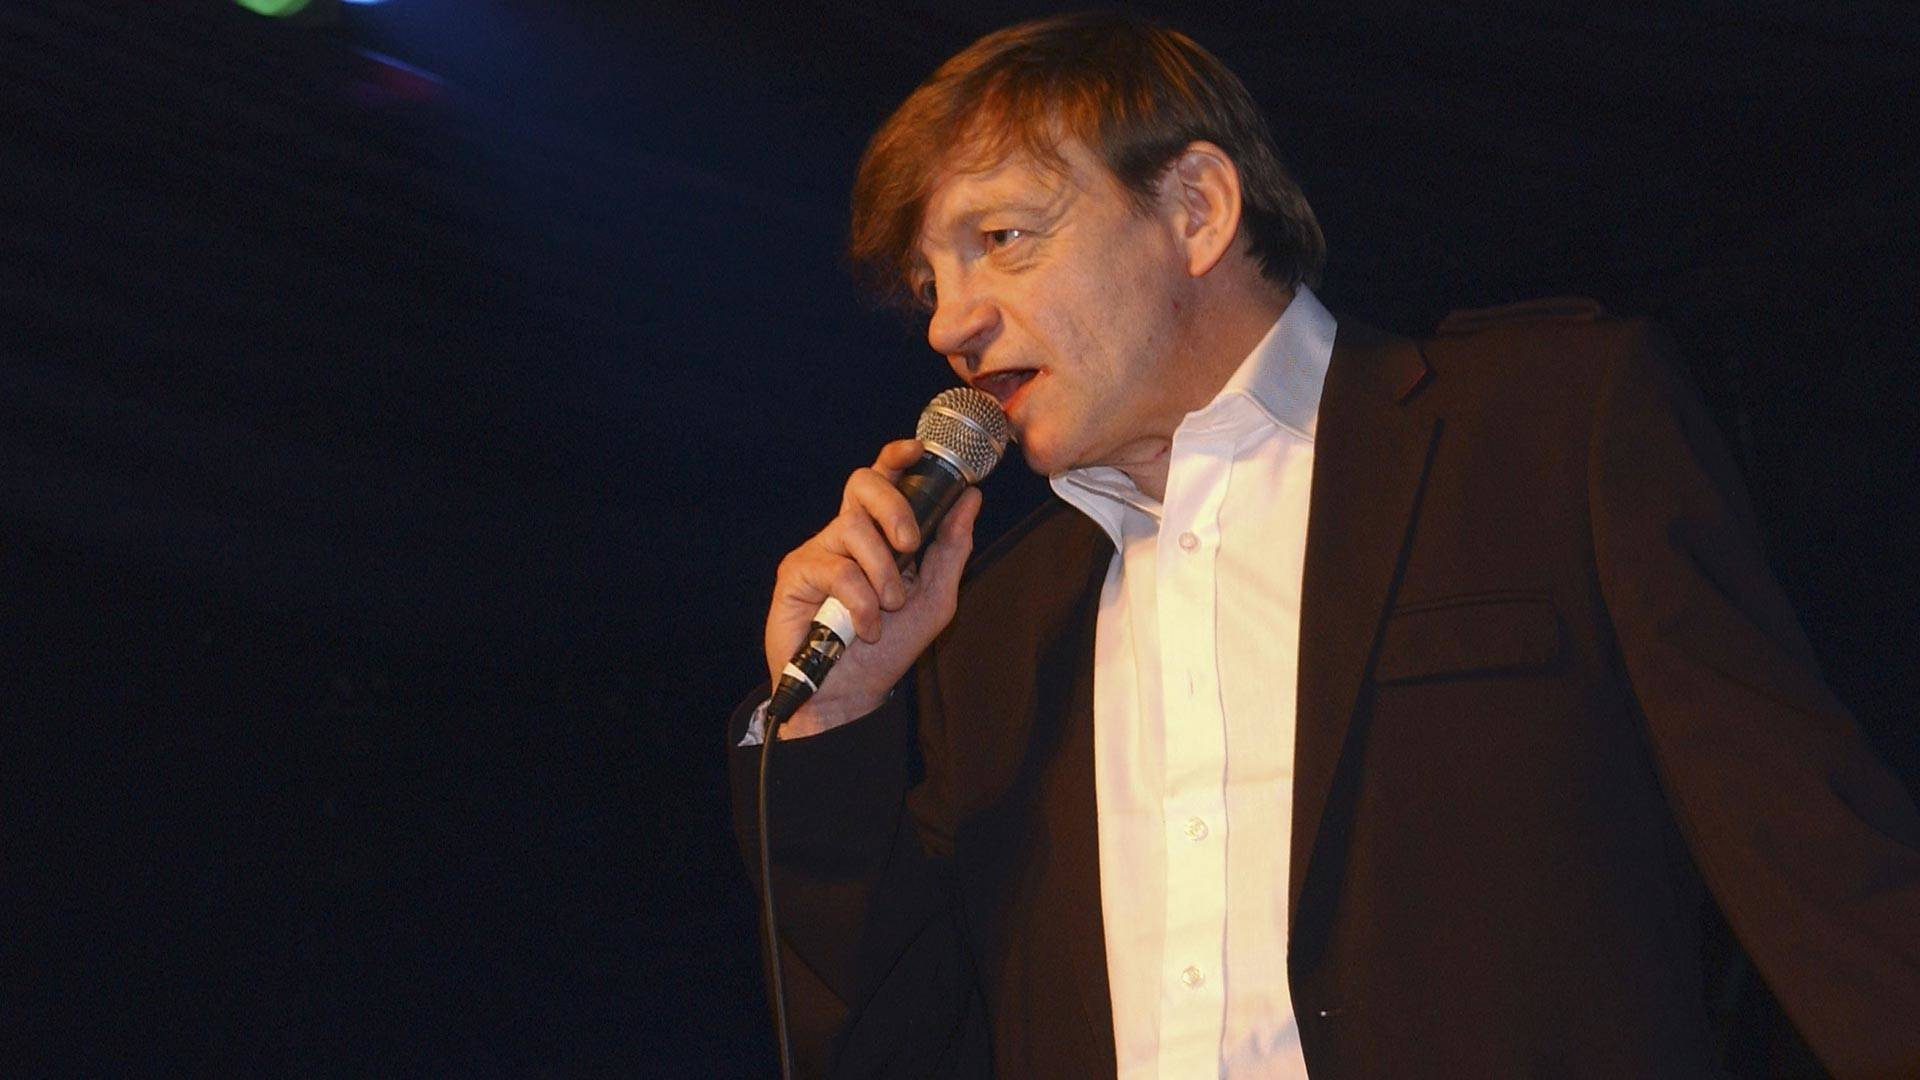 Mark E. Smith of The Fall performs at the Hammersmith Palais on April 1, 2007 in London. This was the last scheduled concert at the historic West London venue, immortalized by The Clash song 'White Man In Hammersmith Palais.'